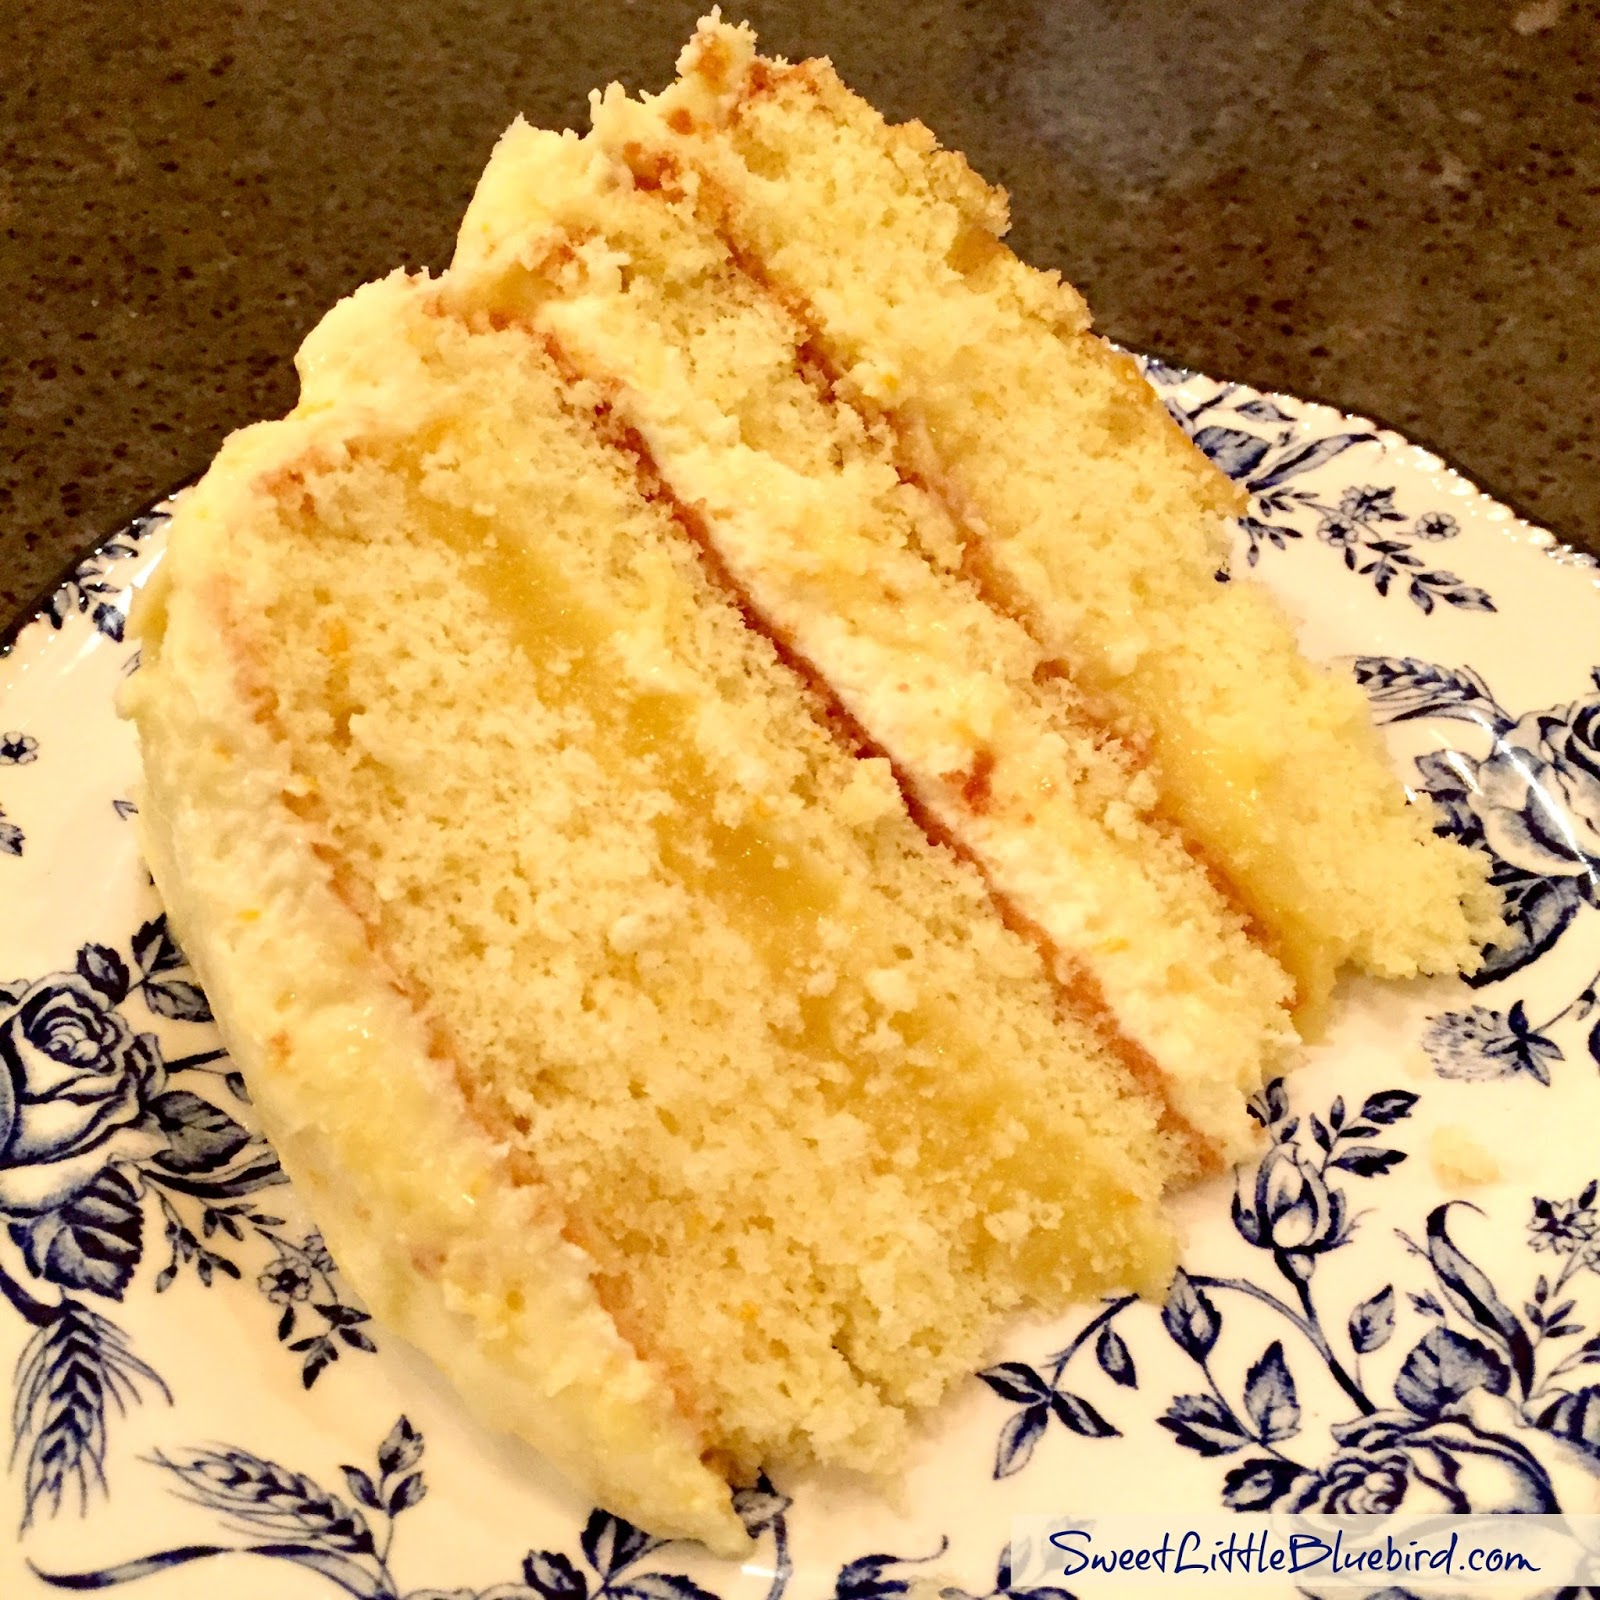 Sweet Little Bluebird: Orange Layer Cake